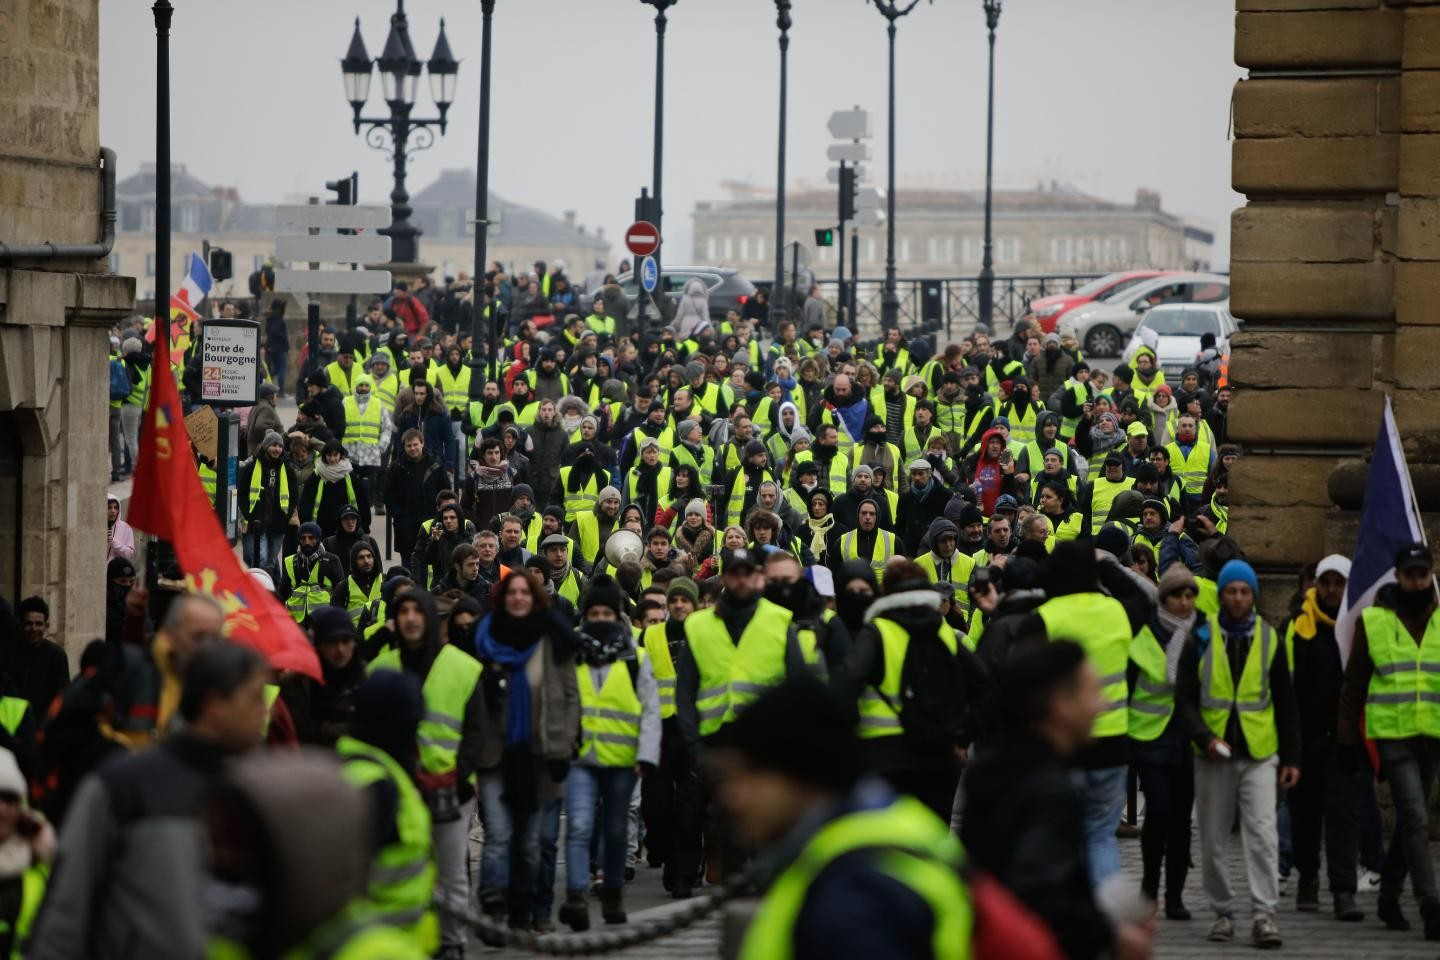 """Yellow vest protesters take part in an anti-government demonstration in Bordeaux, France, on December 29"" --THIBAUD MORITZ/AFP/GETTY IMAGES"